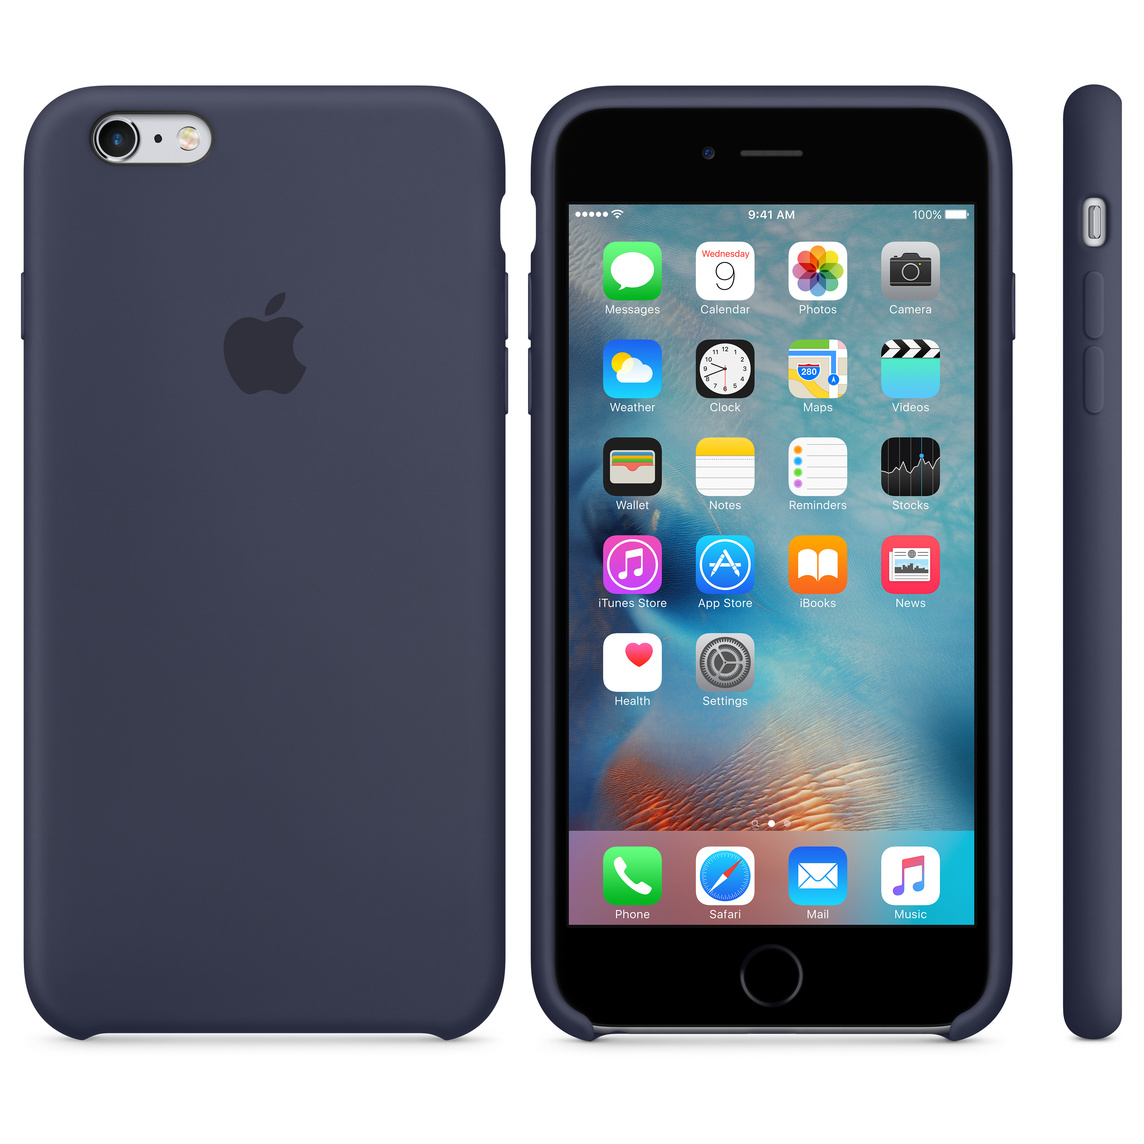 on sale 9ba8f abc39 iPhone 6 Plus / 6s Plus Silicone Case - Midnight Blue